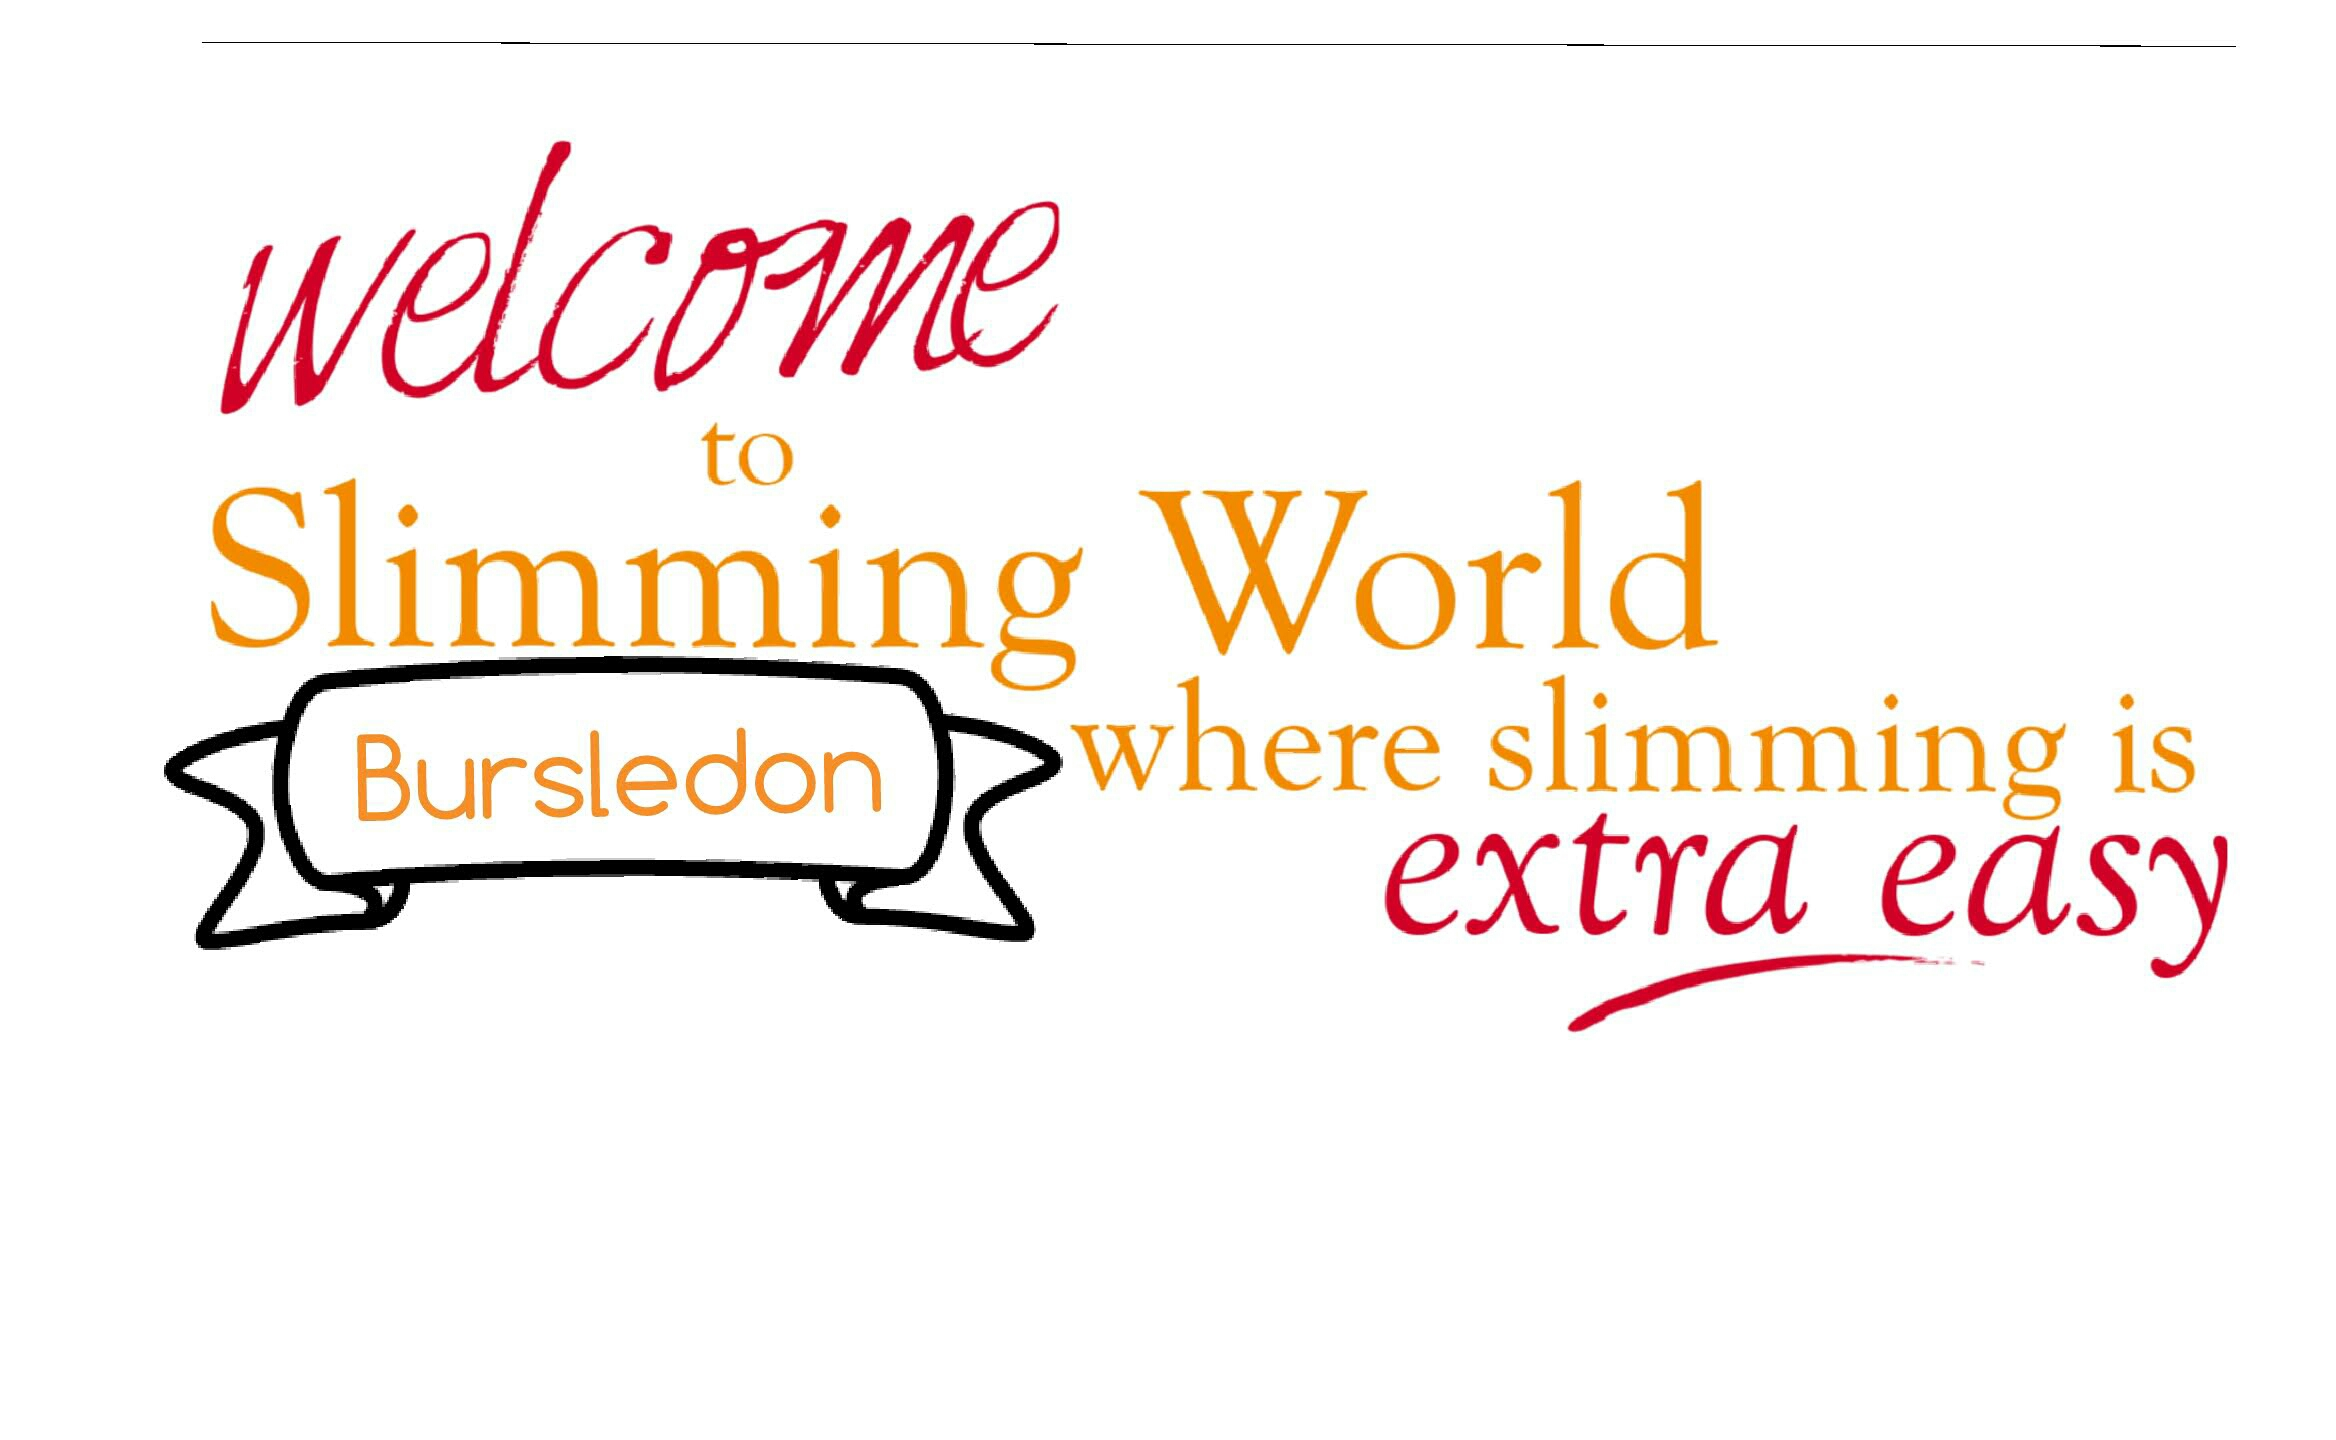 Slimming World Bursledon